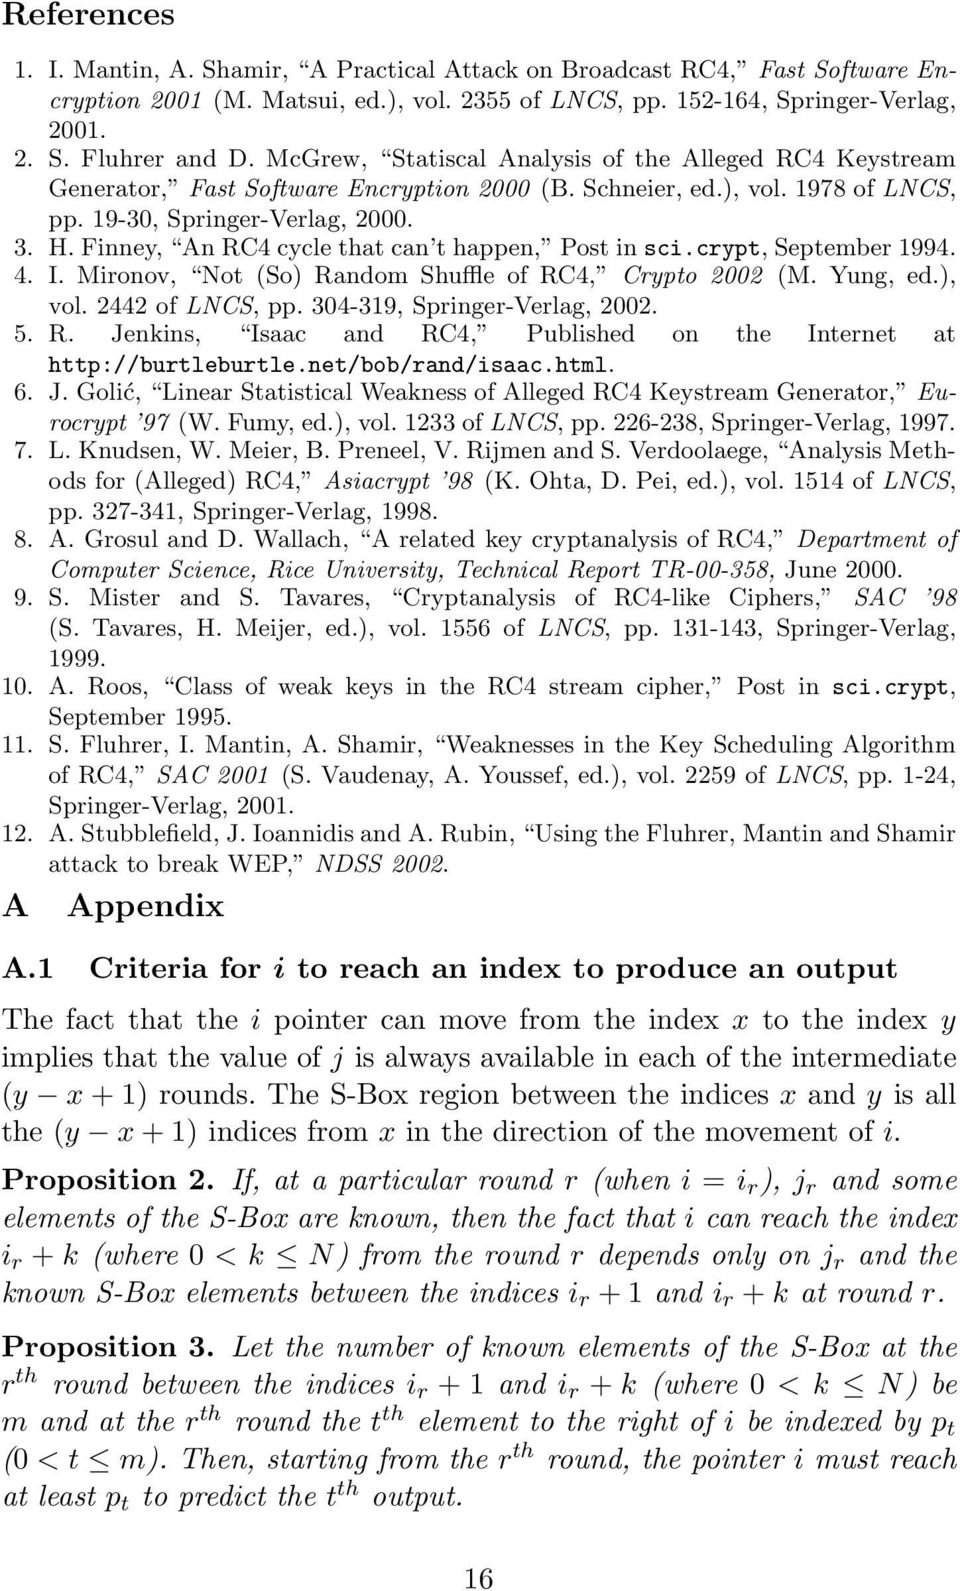 Finney, An RC4 cycle that can t happen, Post in sci.crypt, September 1994. 4. I. Mironov, Not (So) Random Shuffle of RC4, Crypto 2002 (M. Yung, ed.), vol. 2442 of LNCS, pp.